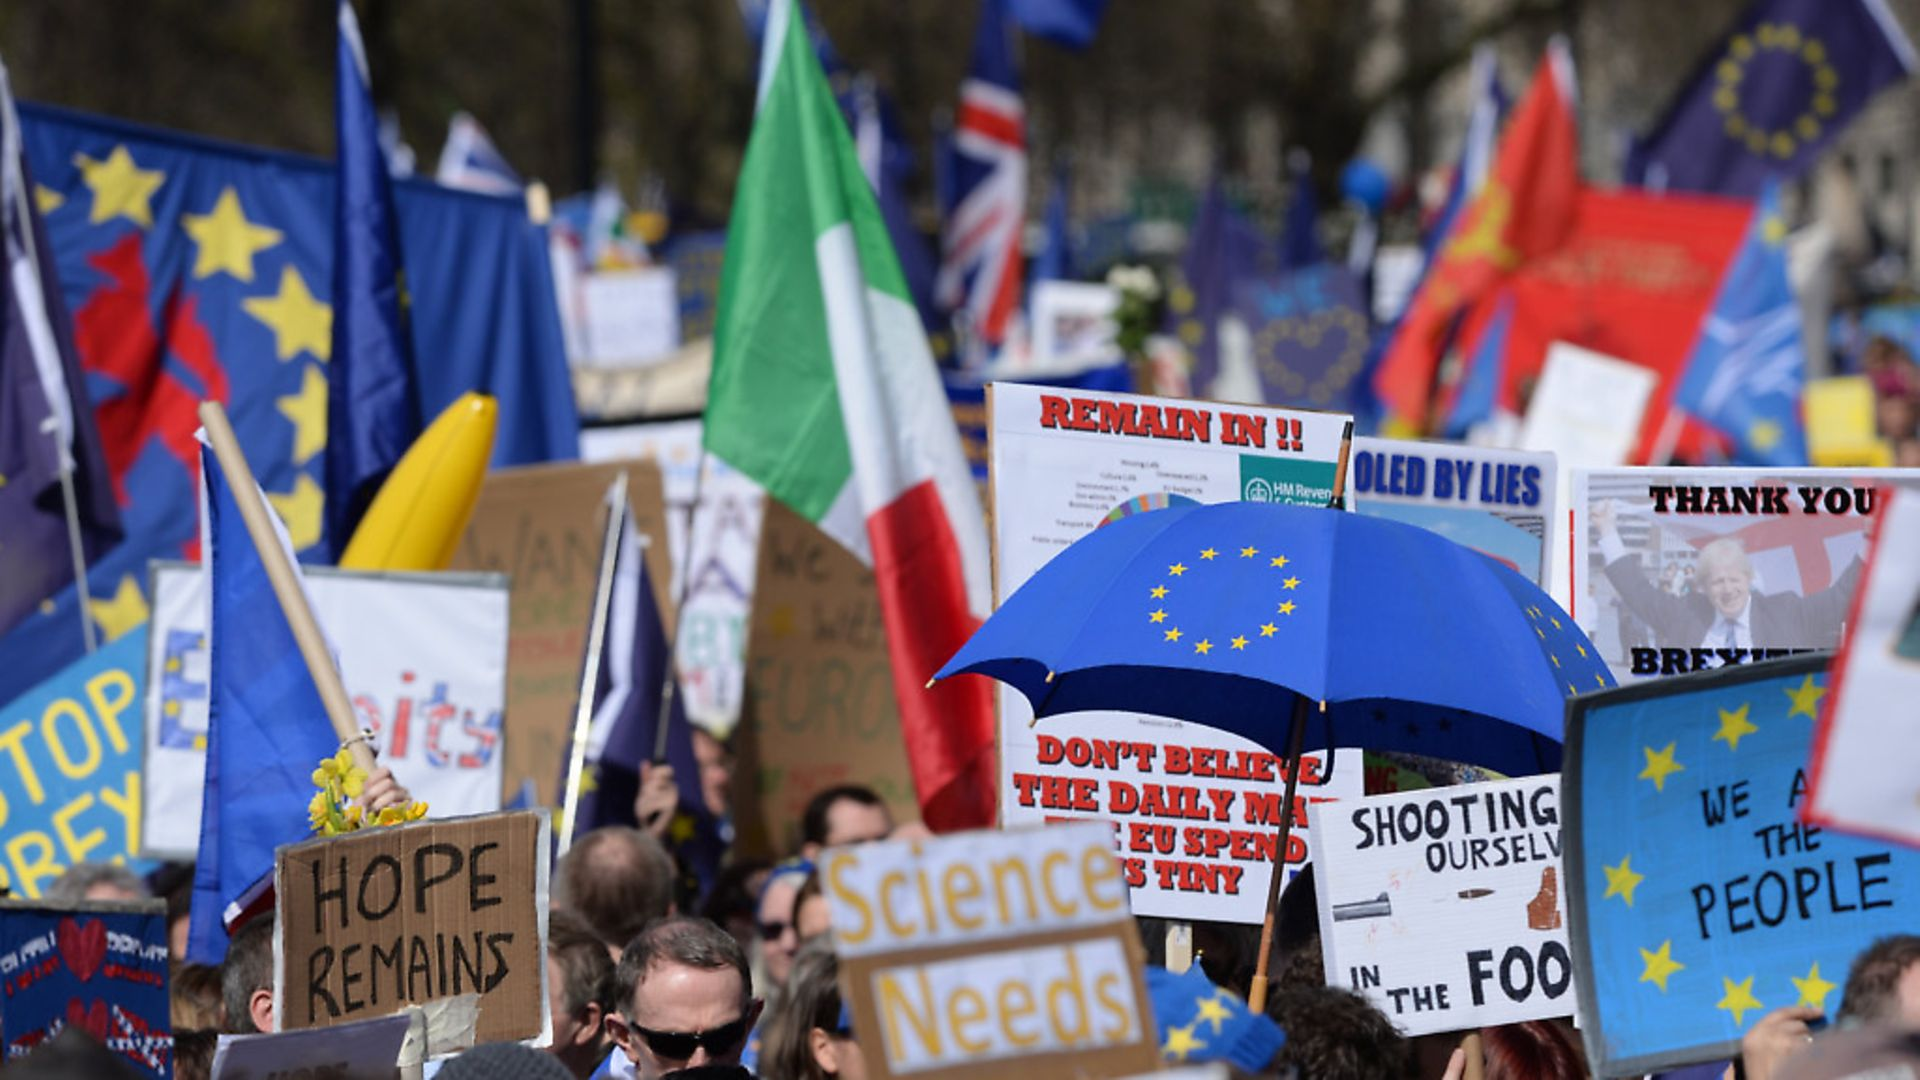 Placards and flags are held by pro-EU protesters. Photograph: Victoria Jones/PA Images. - Credit: PA Wire/PA Images